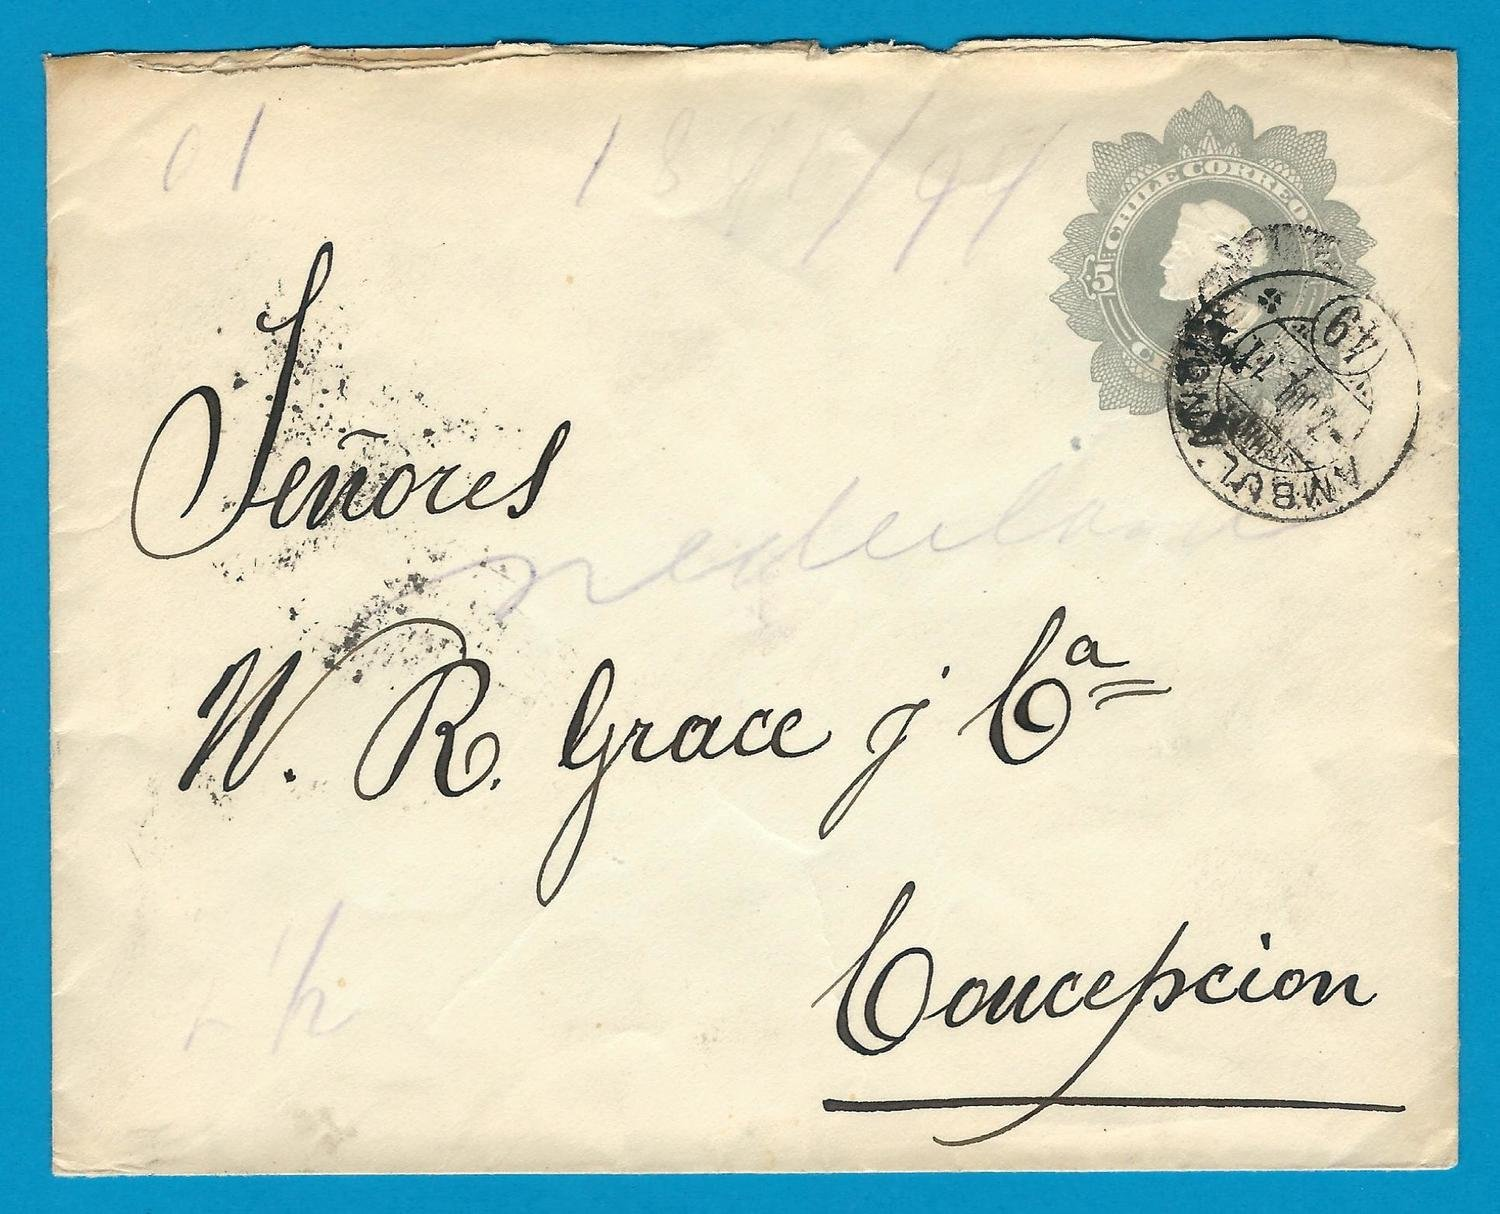 CHILE postal envelope 1911 Parral with Ambulancia 49 to Concepcion